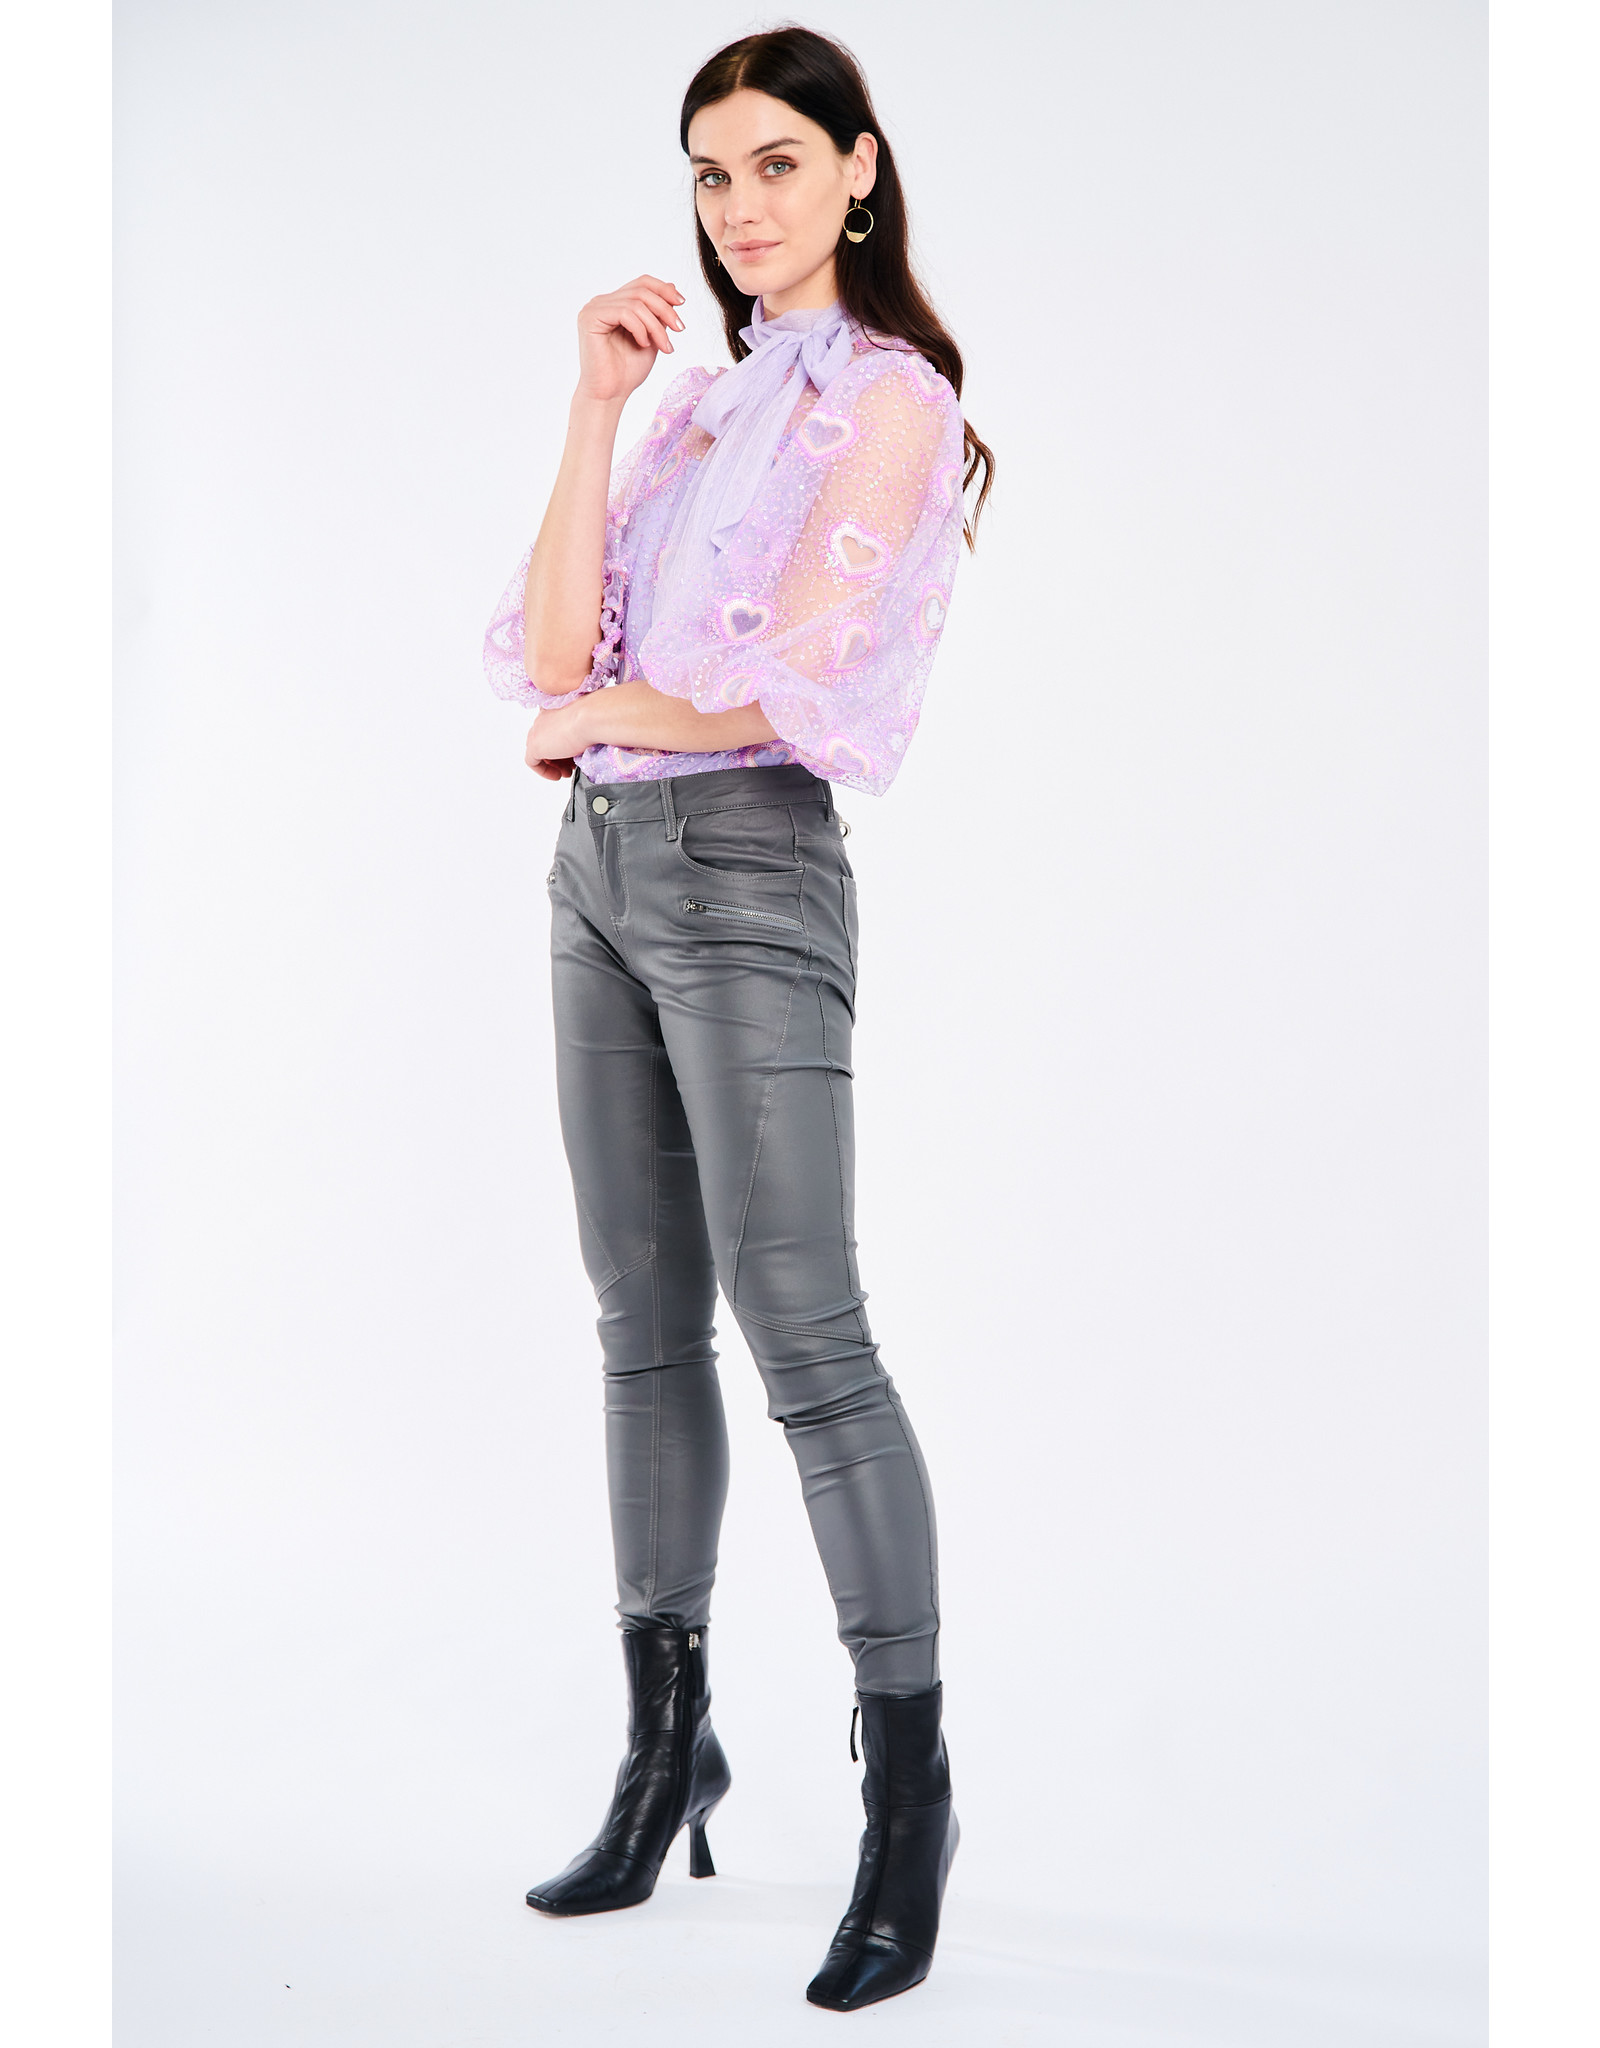 Fee G  835/k - Heart Embroidery Tulle Top